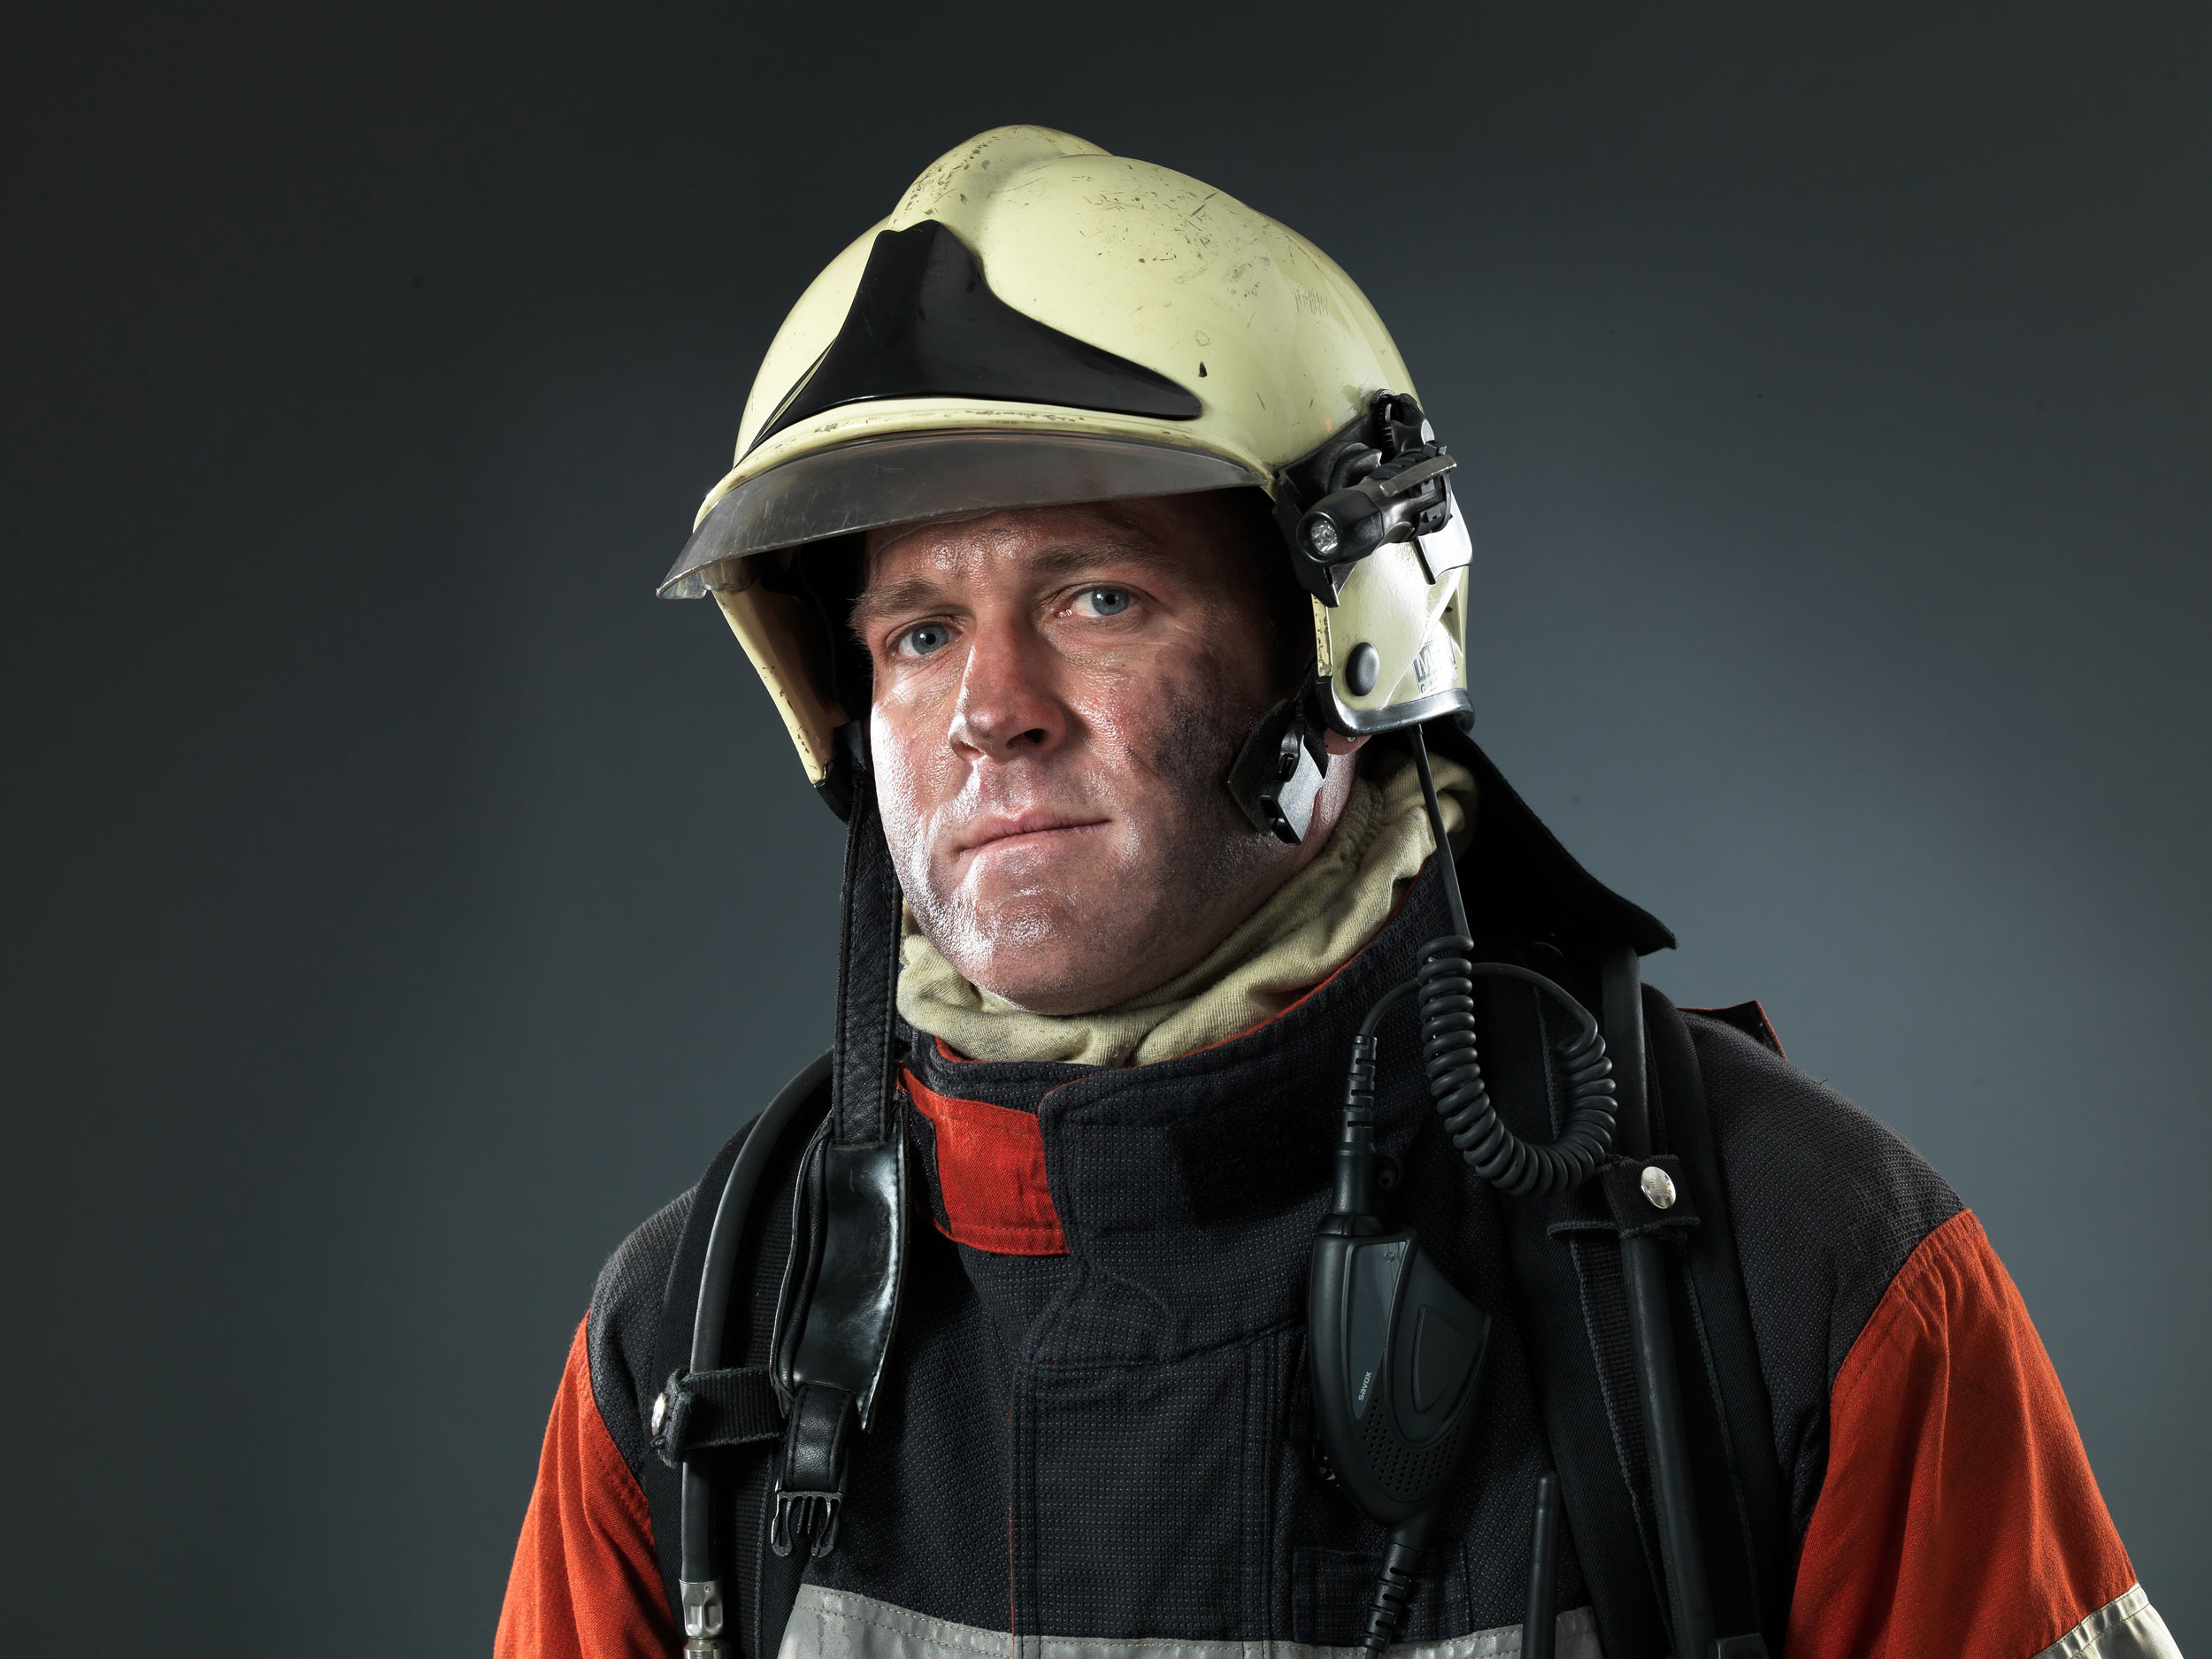 Firefighter unretouched